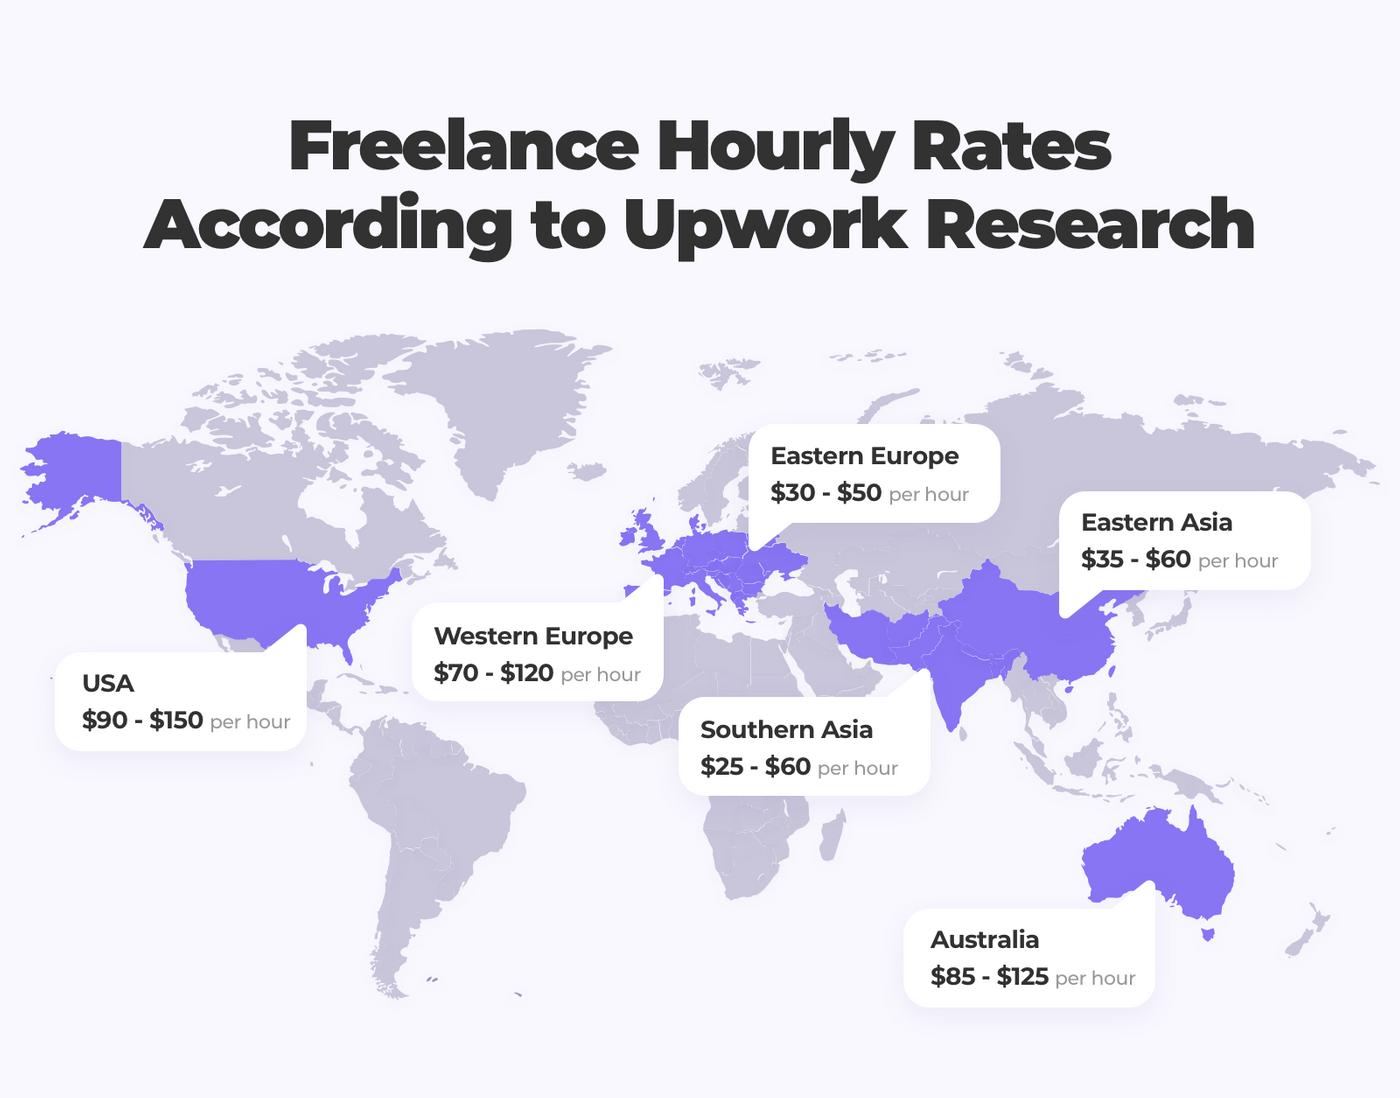 Freelance CTOs hourly rates